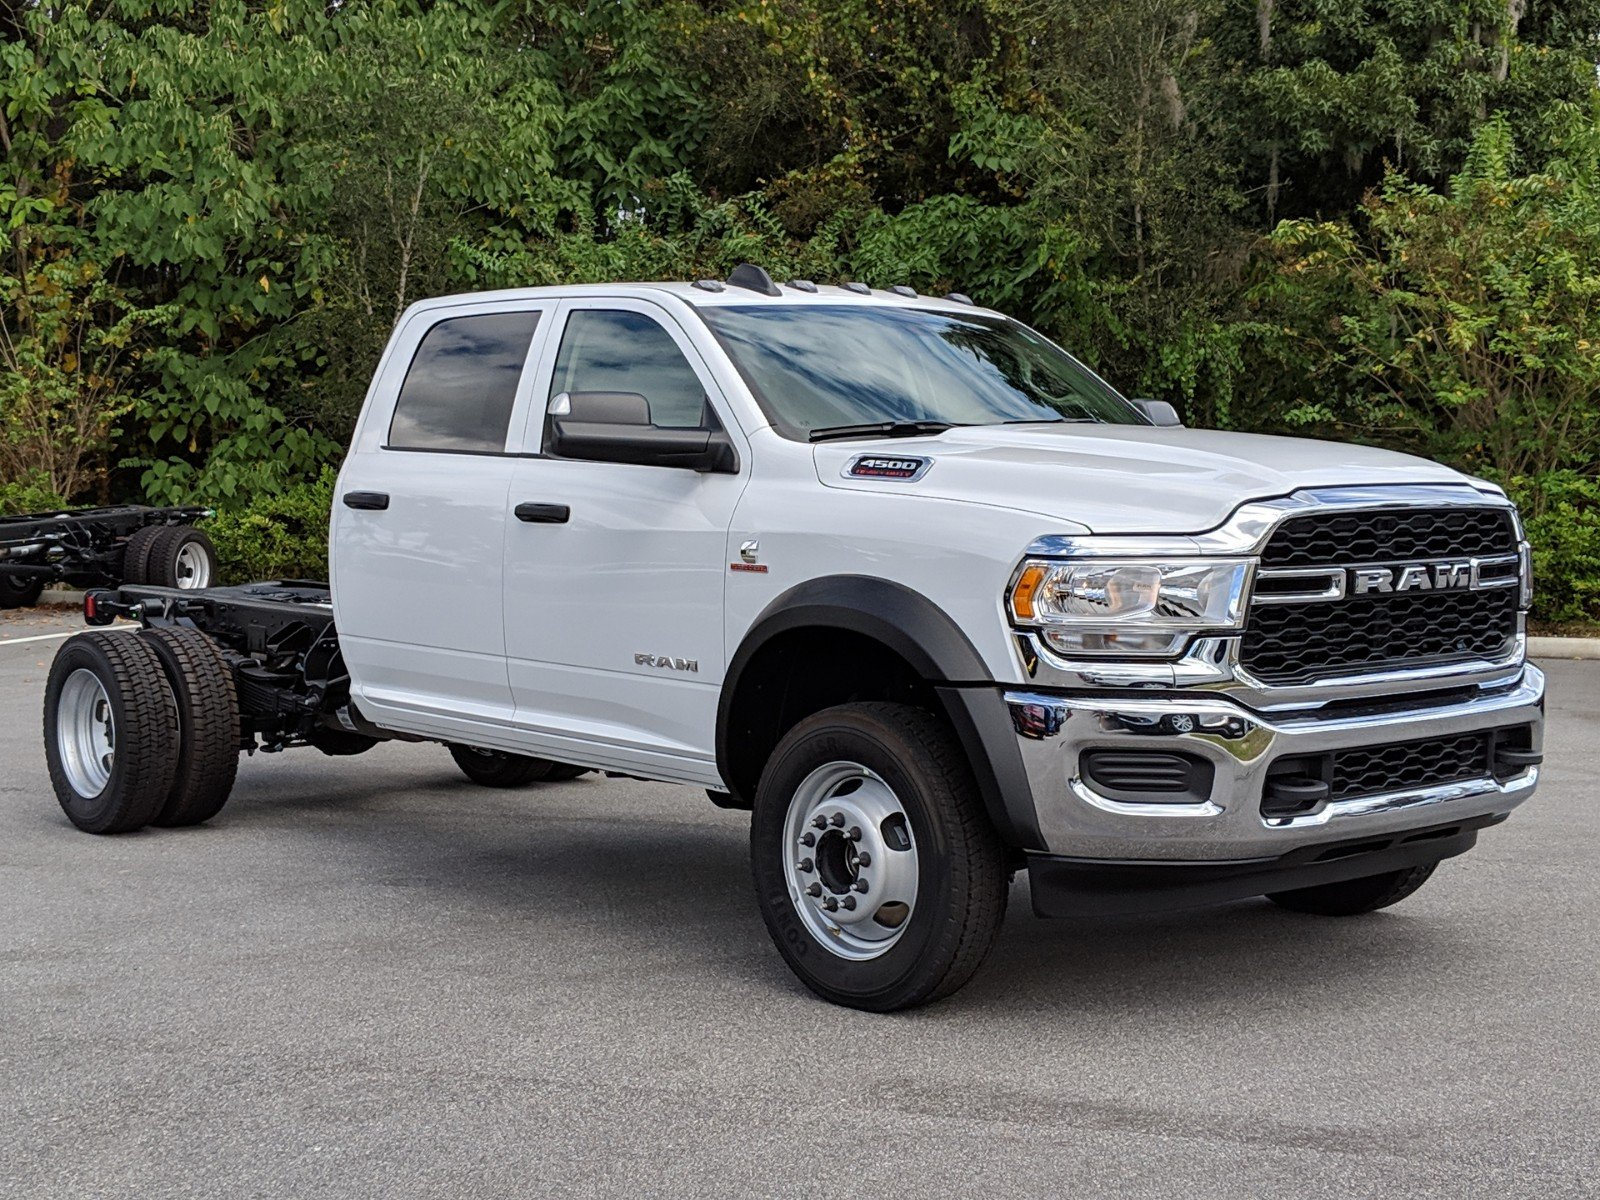 Ram 4500 For Sale >> New 2019 Ram 4500 Tradesman Chassis Crew Cab 4x4 173 4 Wb